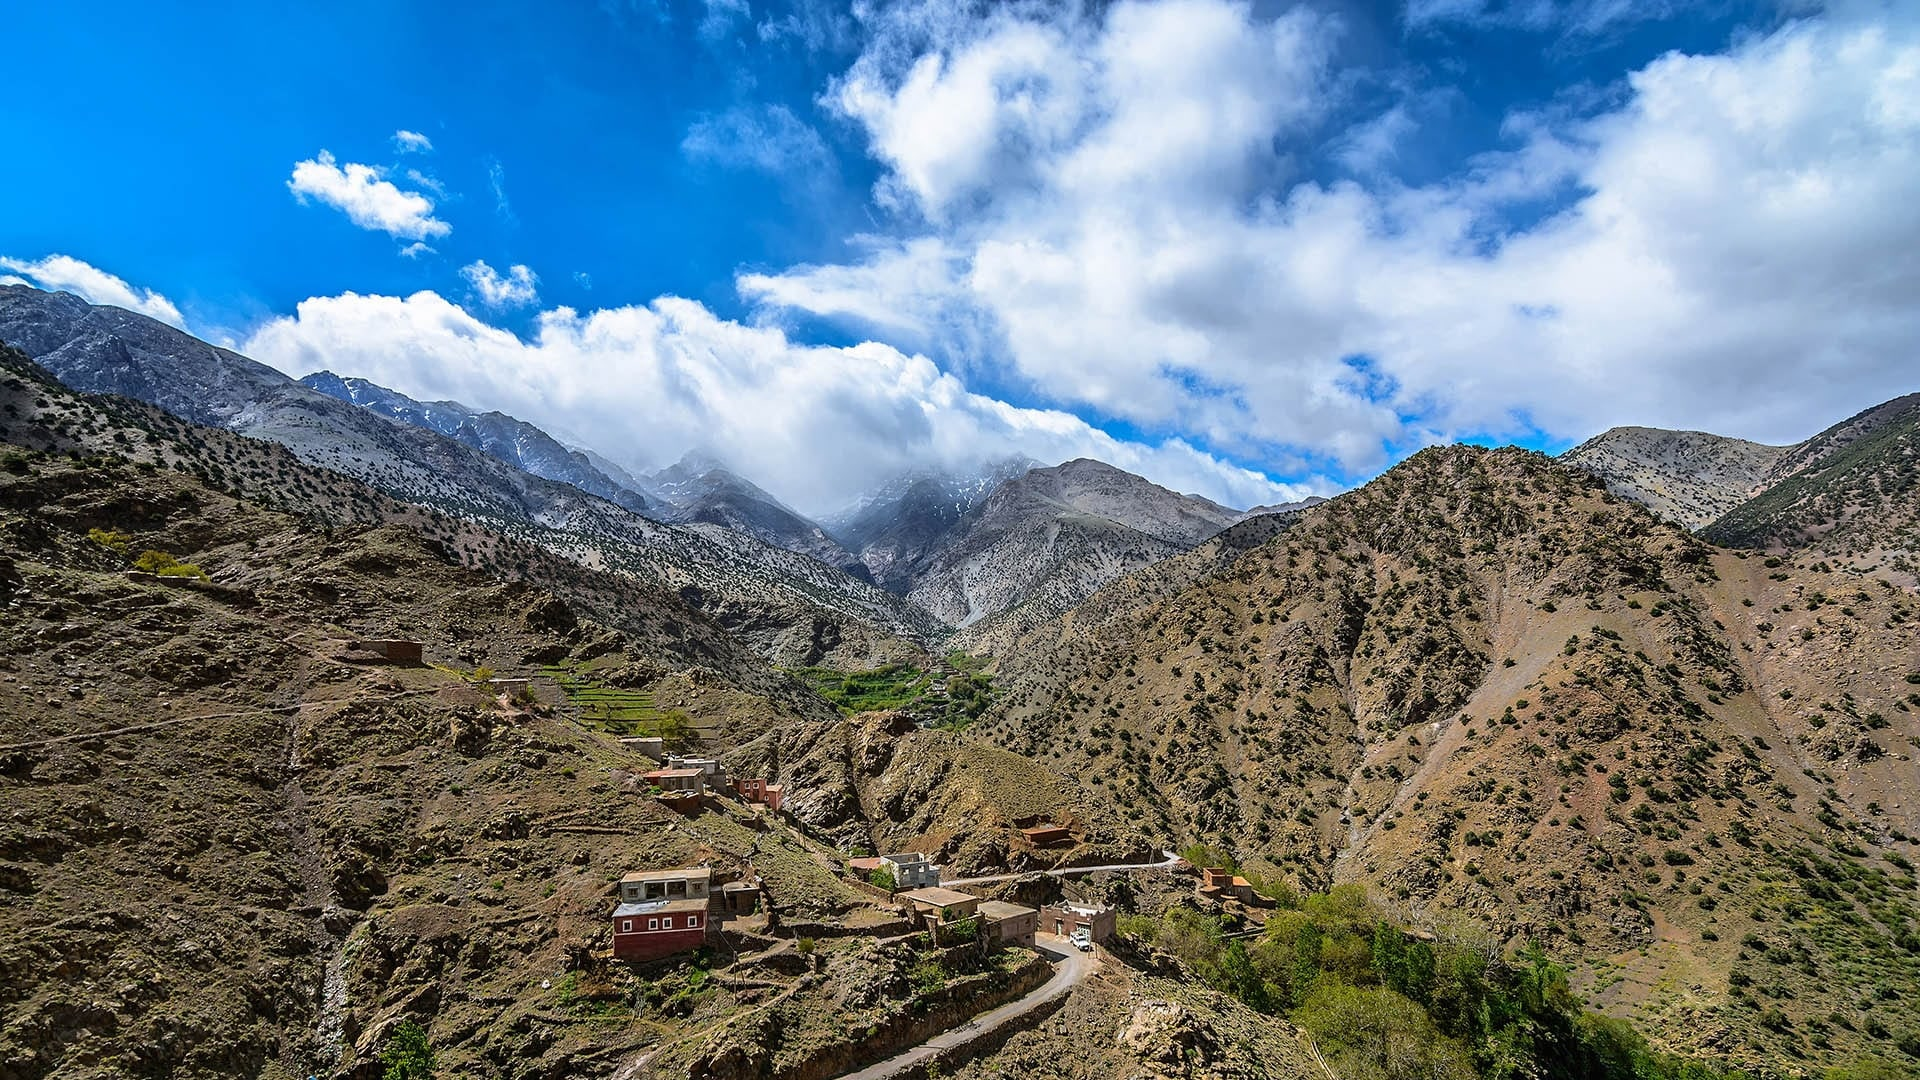 pathfinder treks - 4 day trek 3 berber valleys from marrakech option